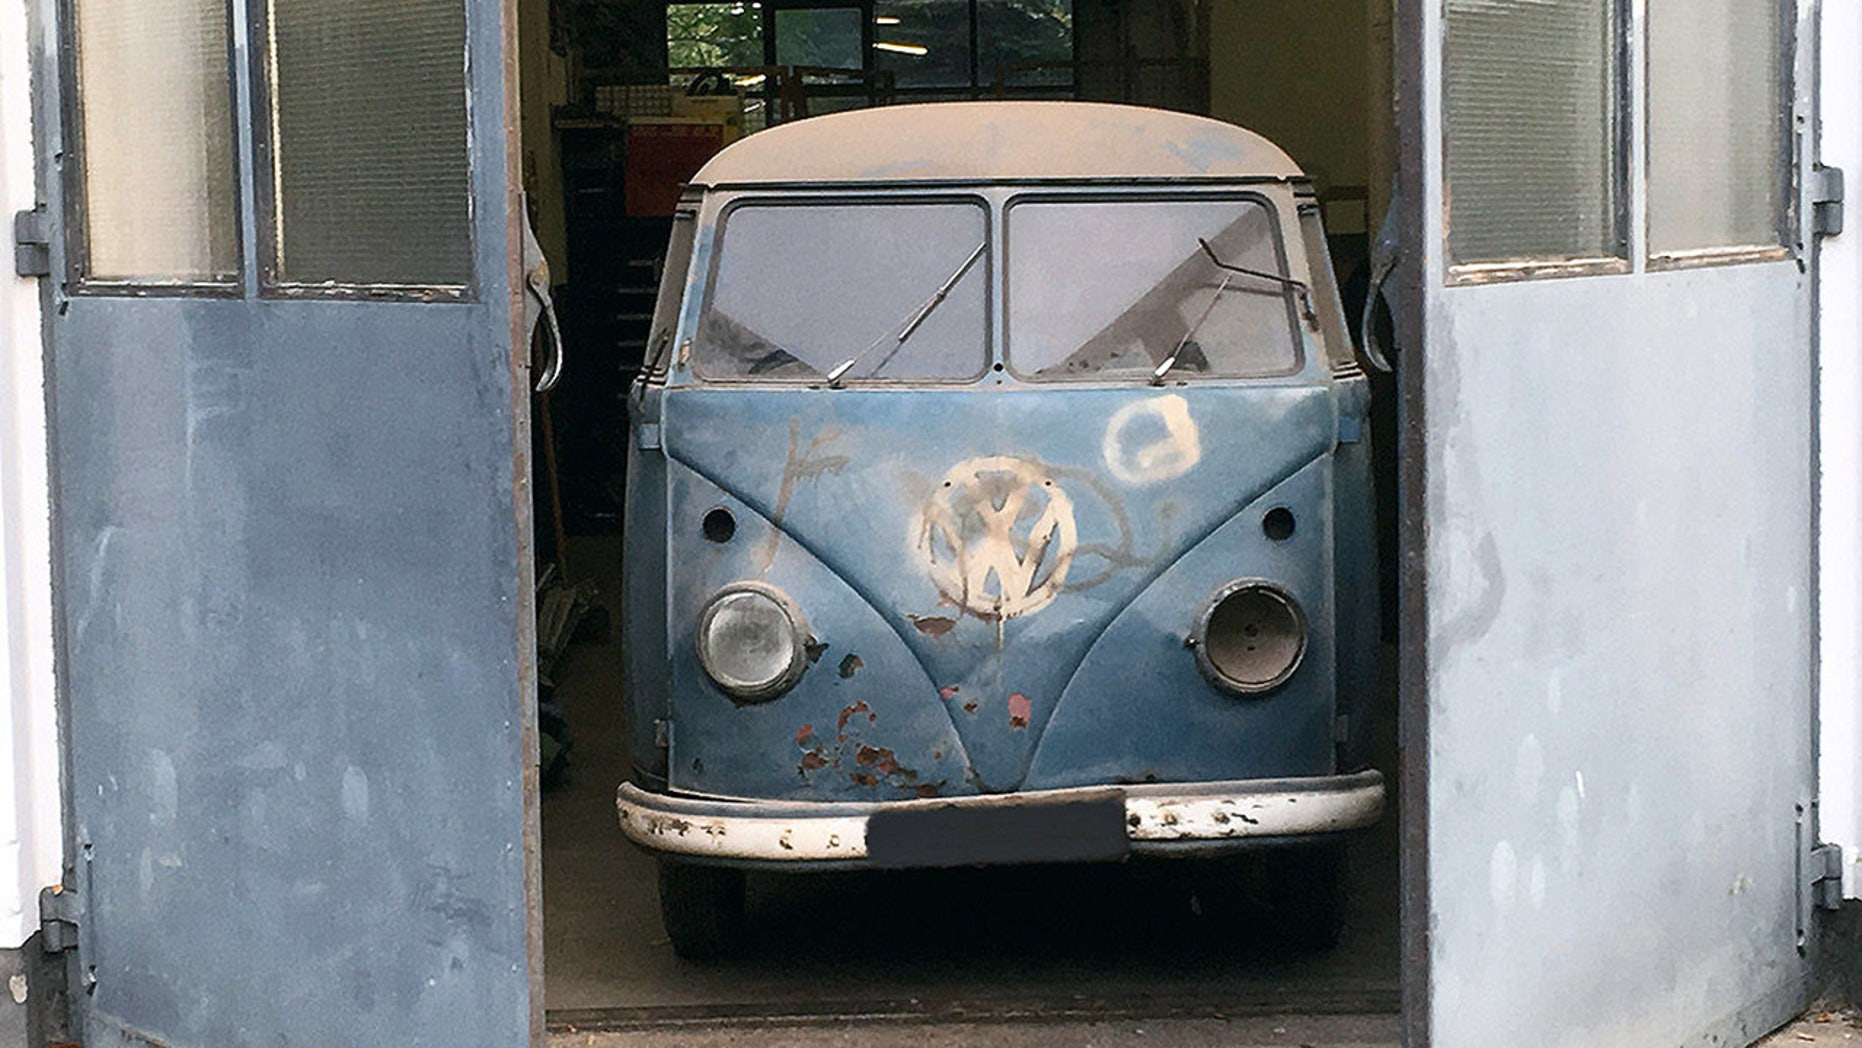 First VW police speed camera van discovered in garage ...